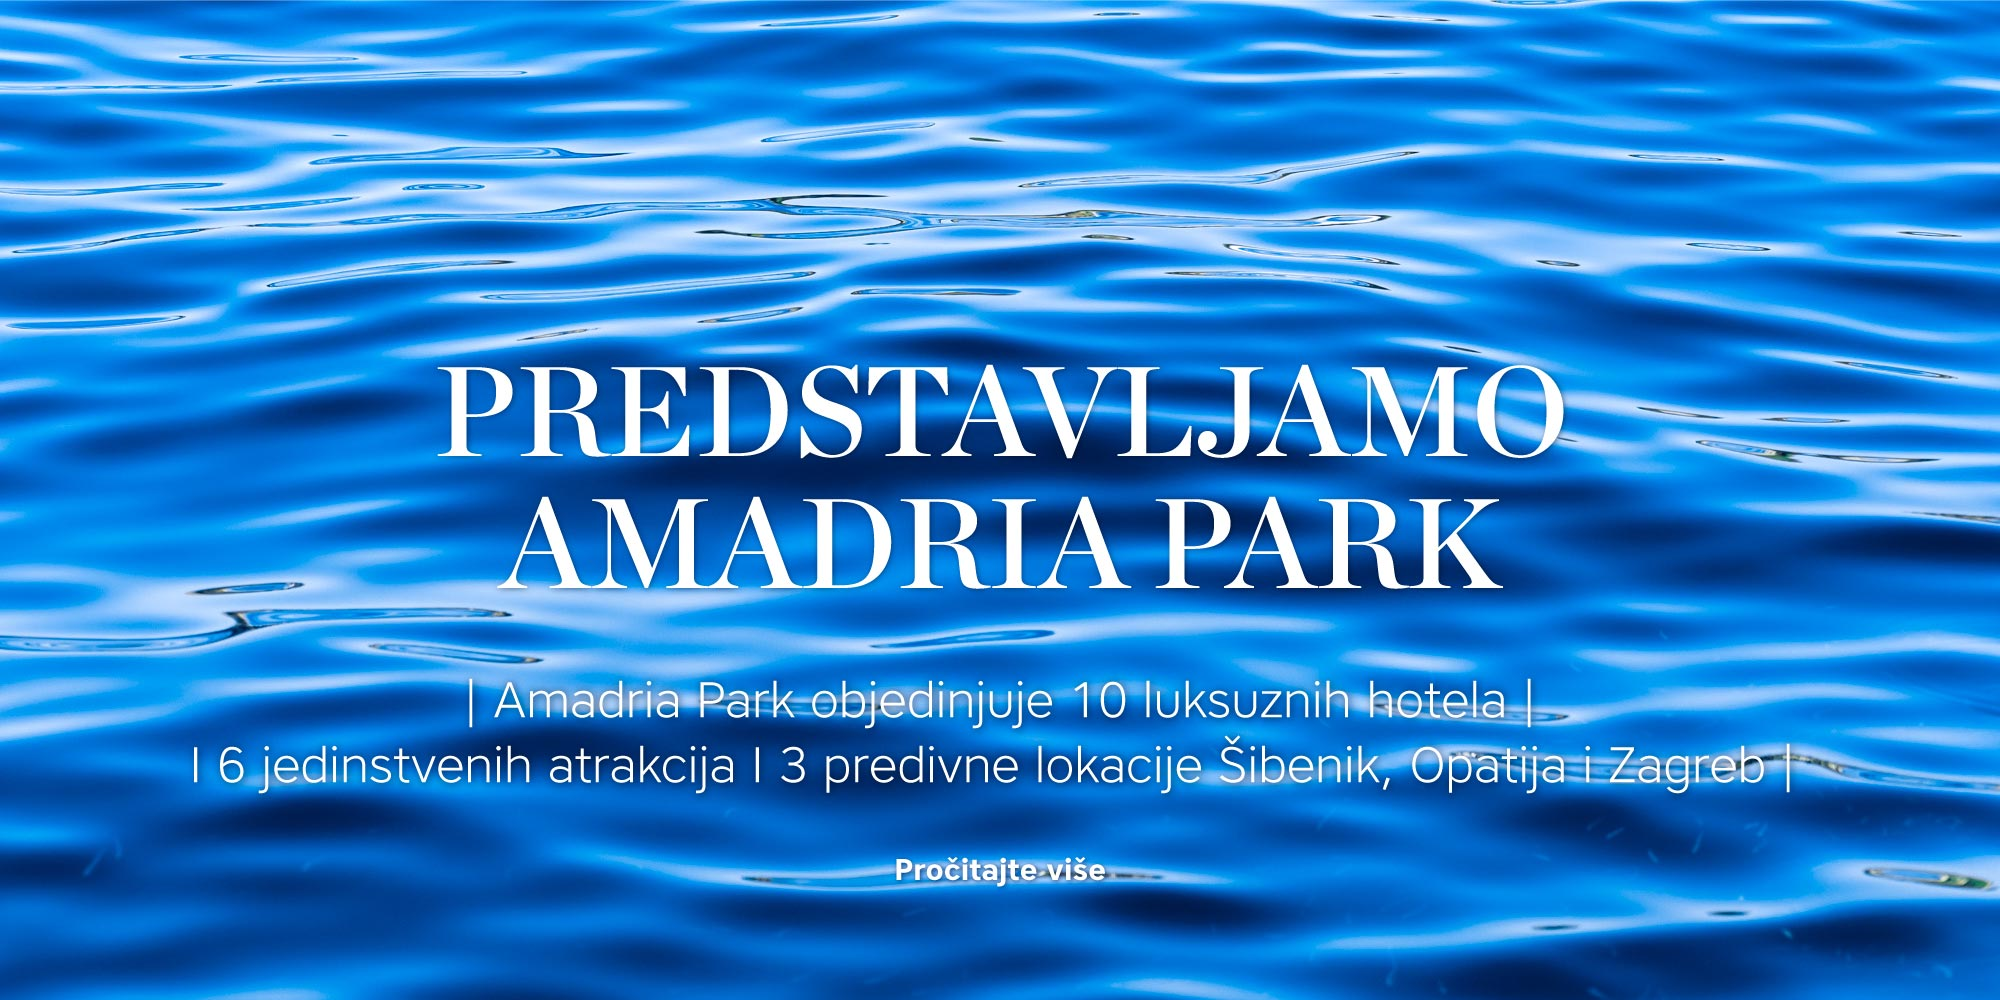 Web_slider_Introducing_Amadria_Park_HRV